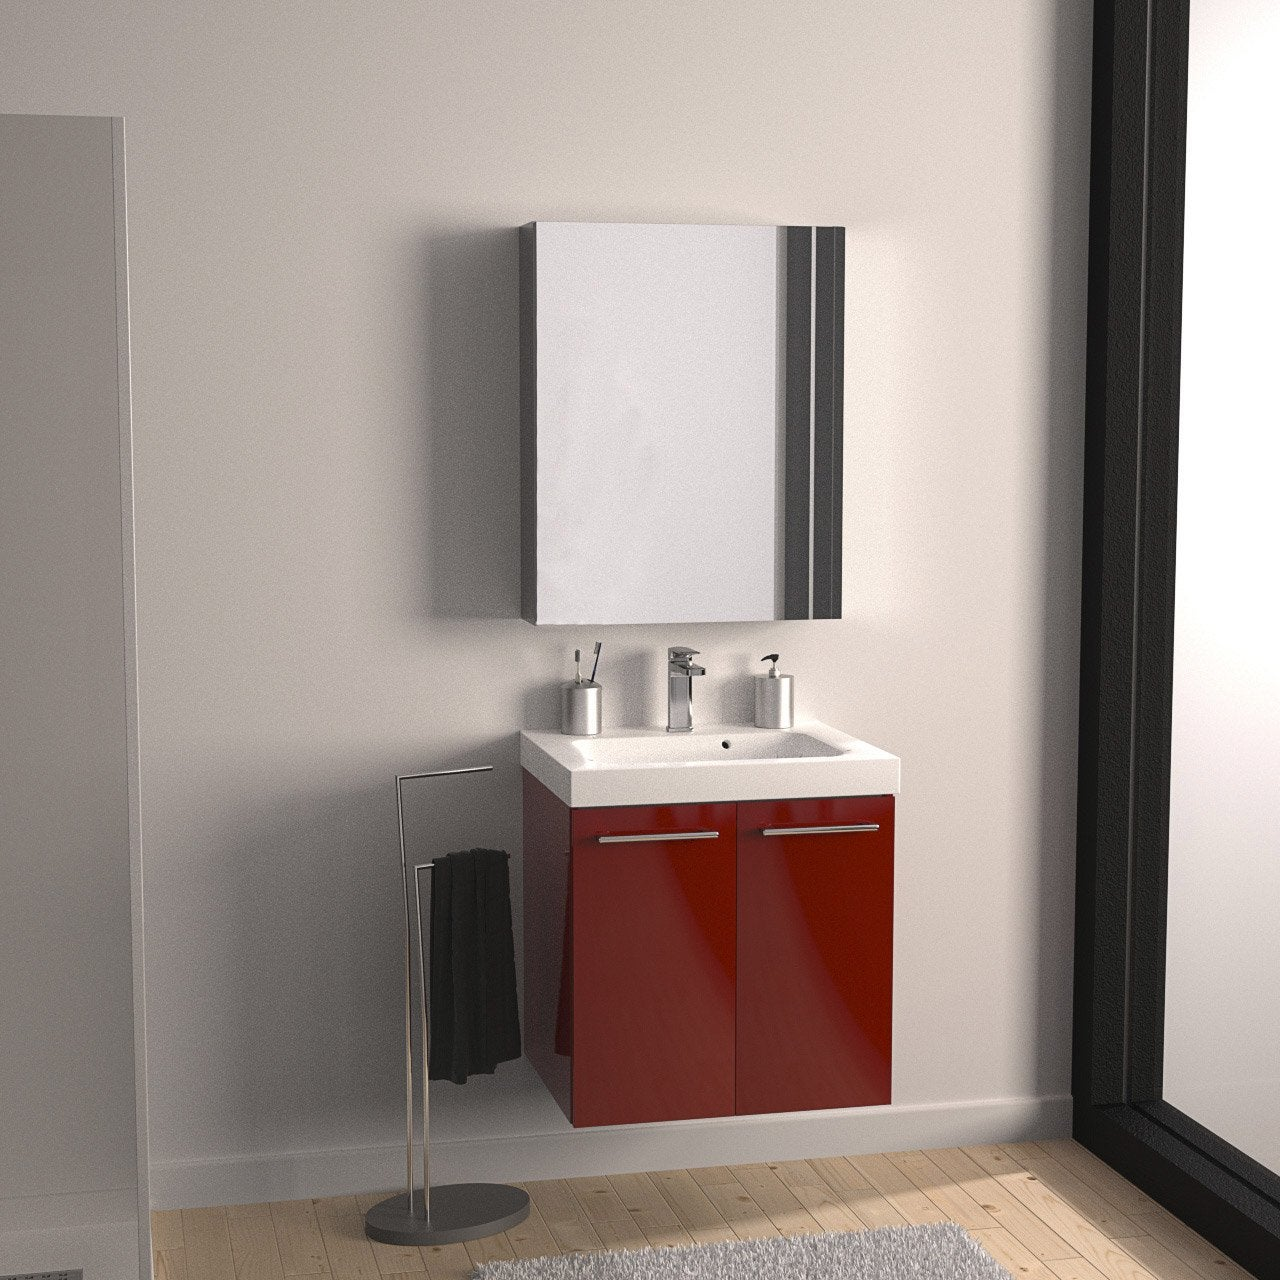 Meuble vasque x x cm rouge sensea remix for Stratifie salle de bain leroy merlin